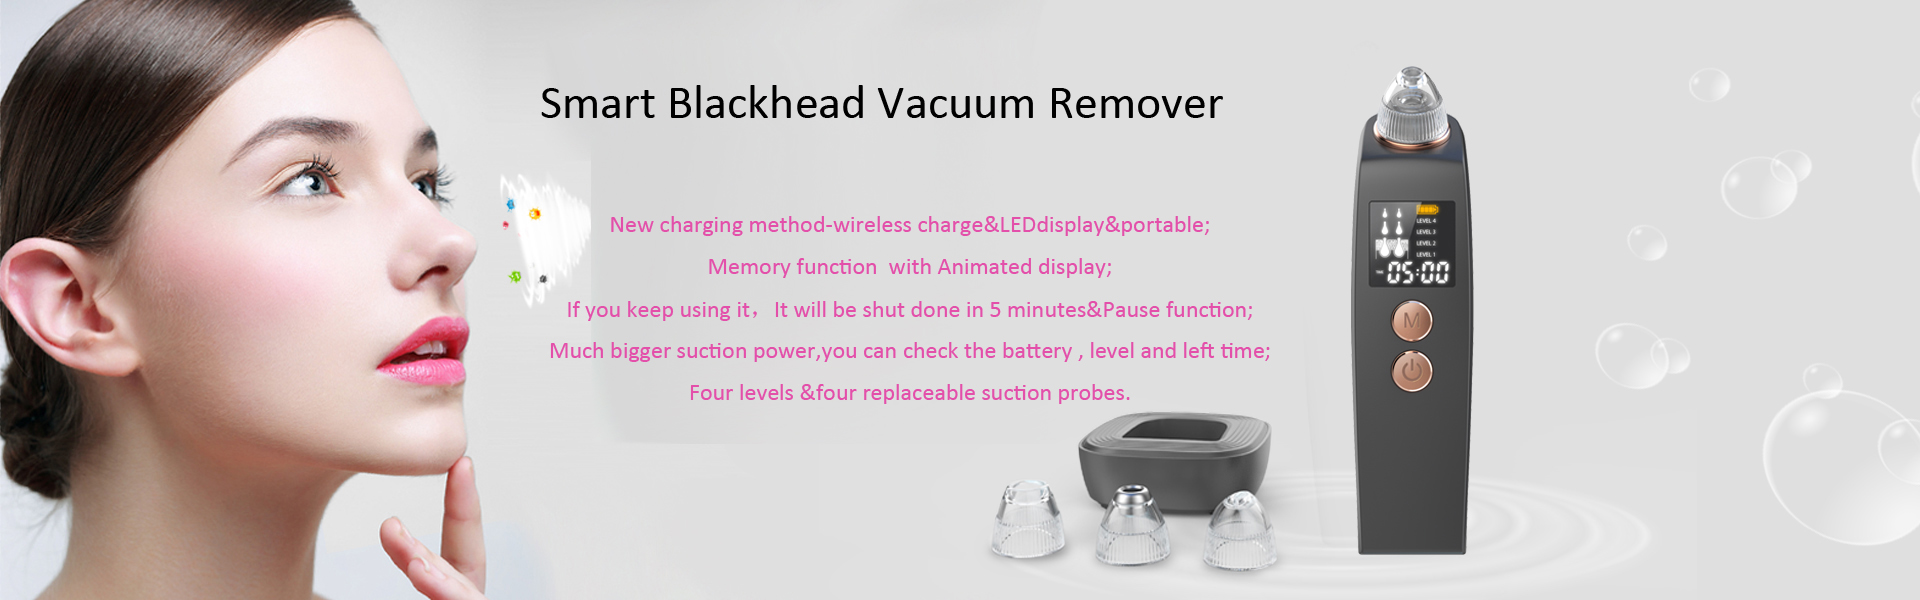 Smart blackhead vacuum remover